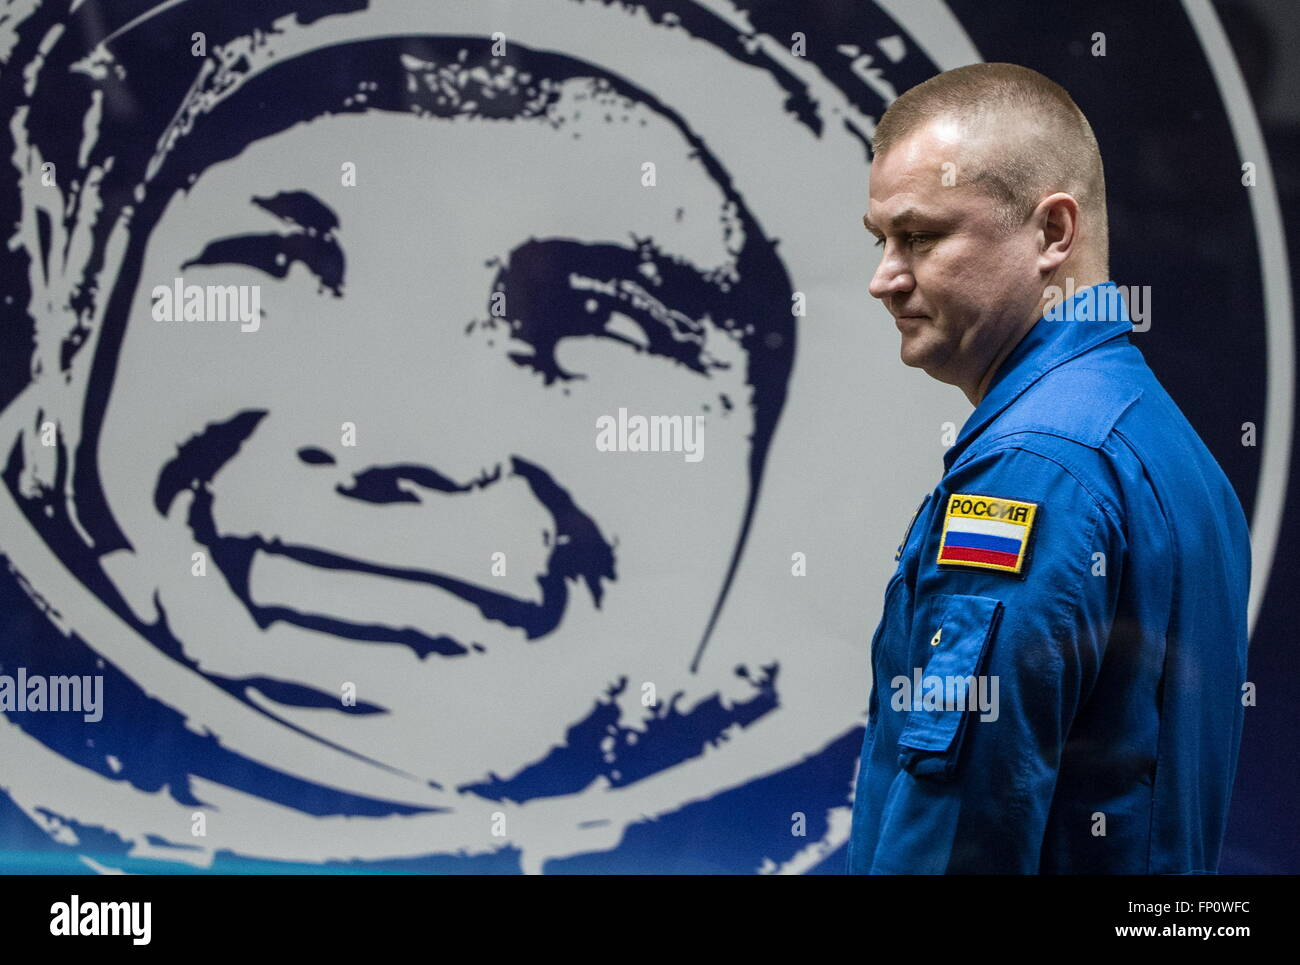 Baikonur, Kazakhstan. 17th Mar, 2016. International Space Station Expedition 47/48 main crew member, cosmonaut Alexei Stock Photo